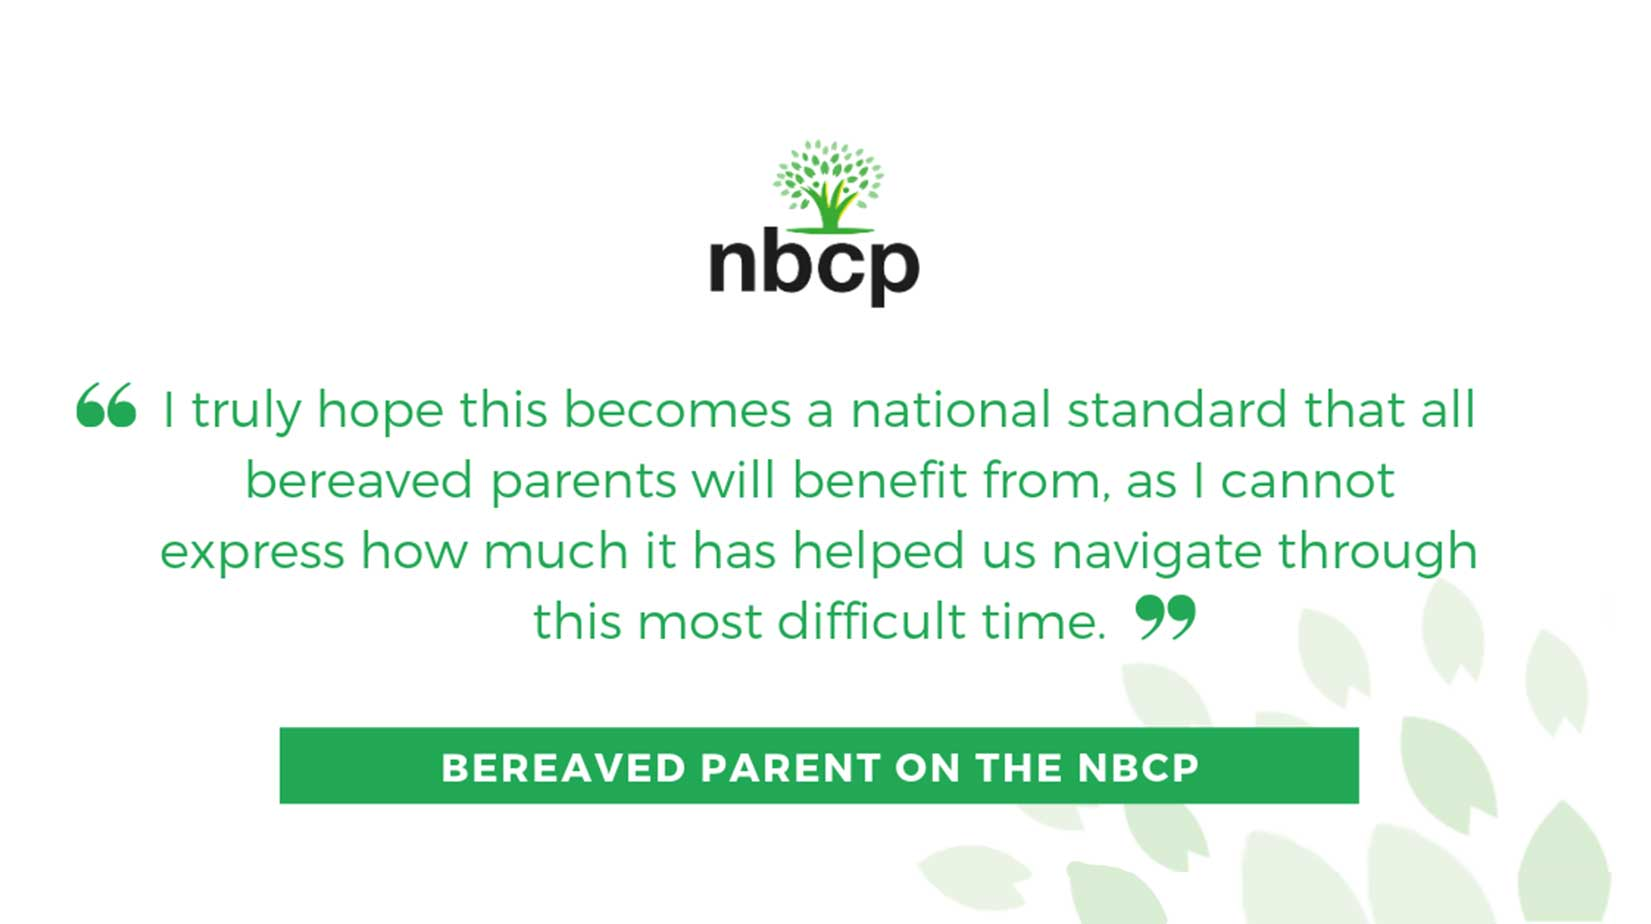 nbcp-quote-image